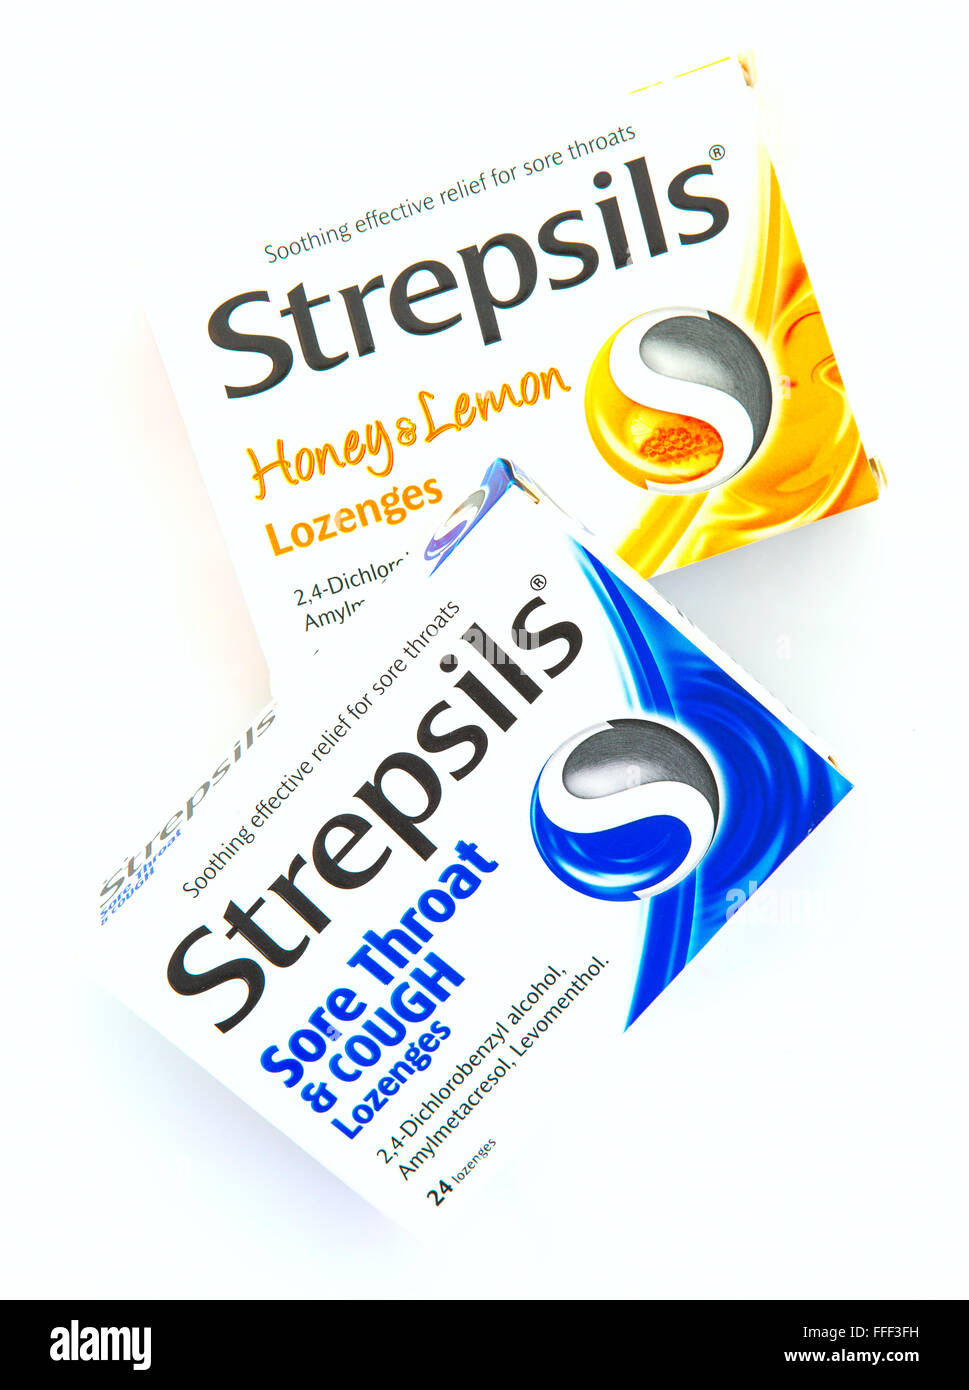 Two Boxes of Strepsils Sore Throat Lozenges - Stock Image